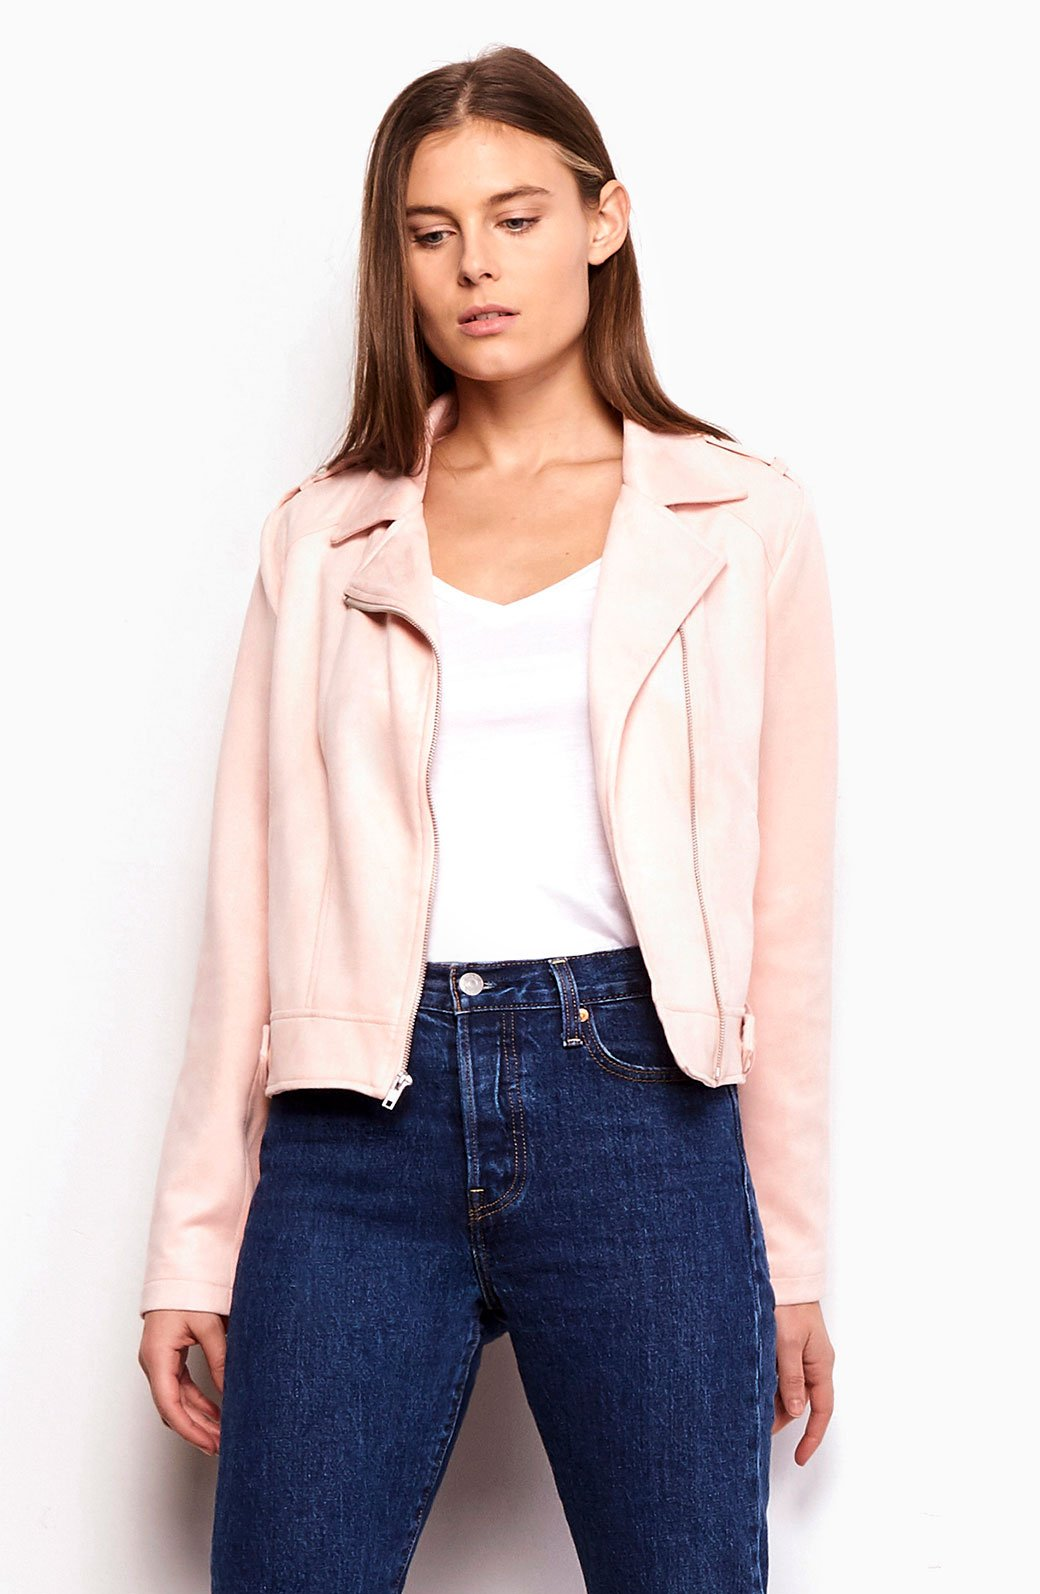 JACK BY BB DAKOTA: WEIR FAUX SUEDE MOTO JACKET - 85 86 eightyfiveightysix